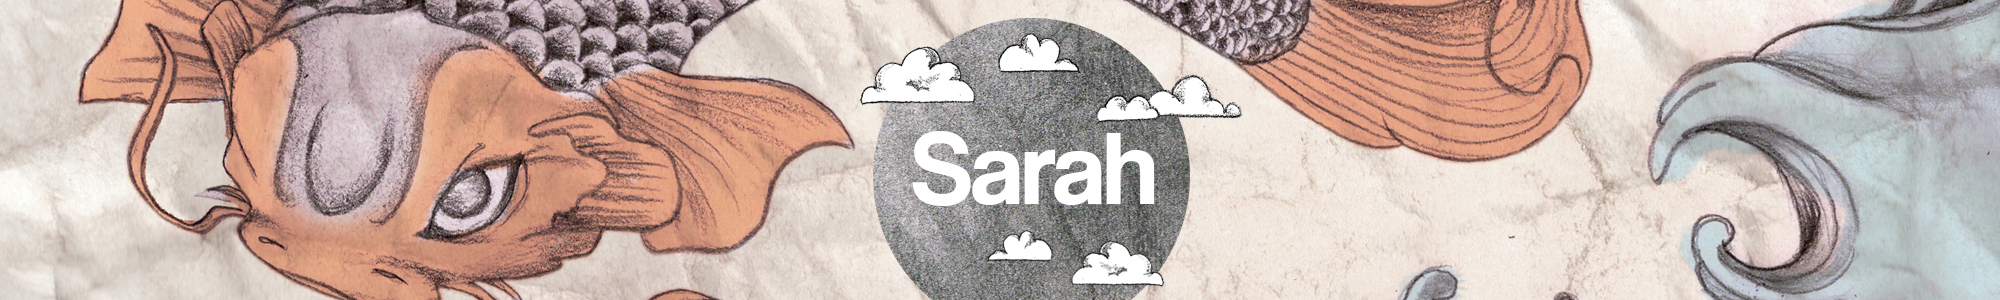 Sarah Makes Things